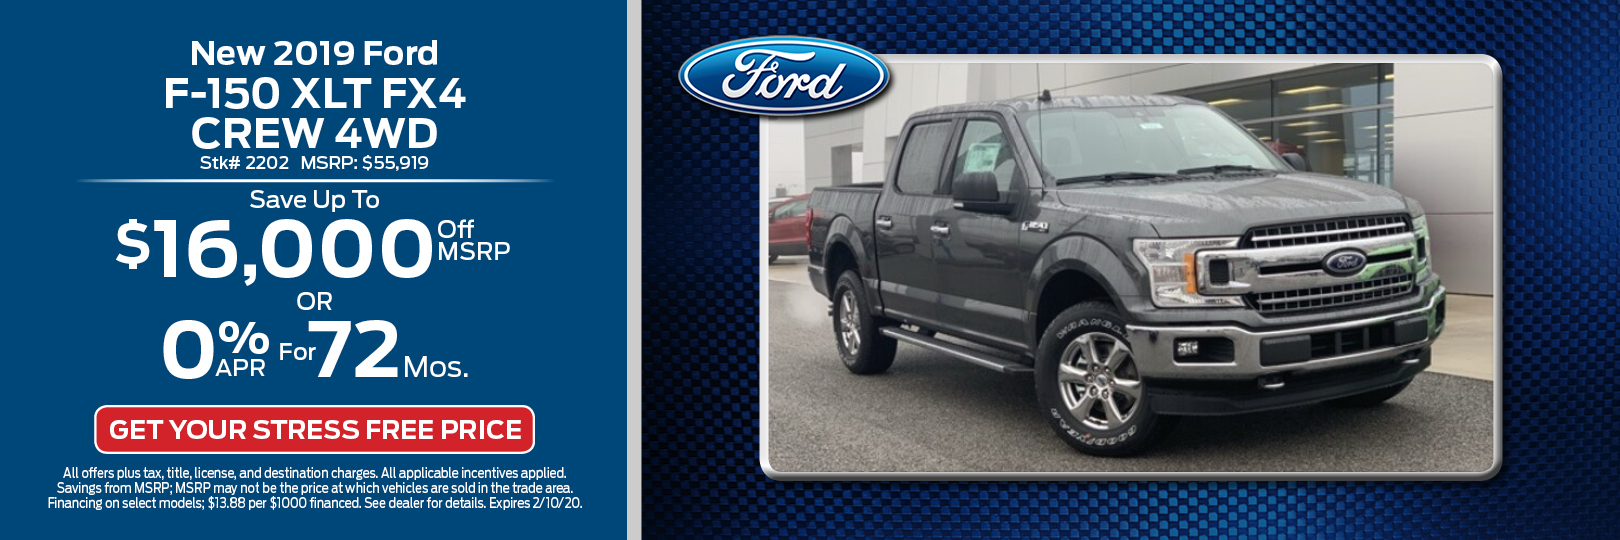 New 2019 Ford F-150 XLT FX4 Crew 4WD